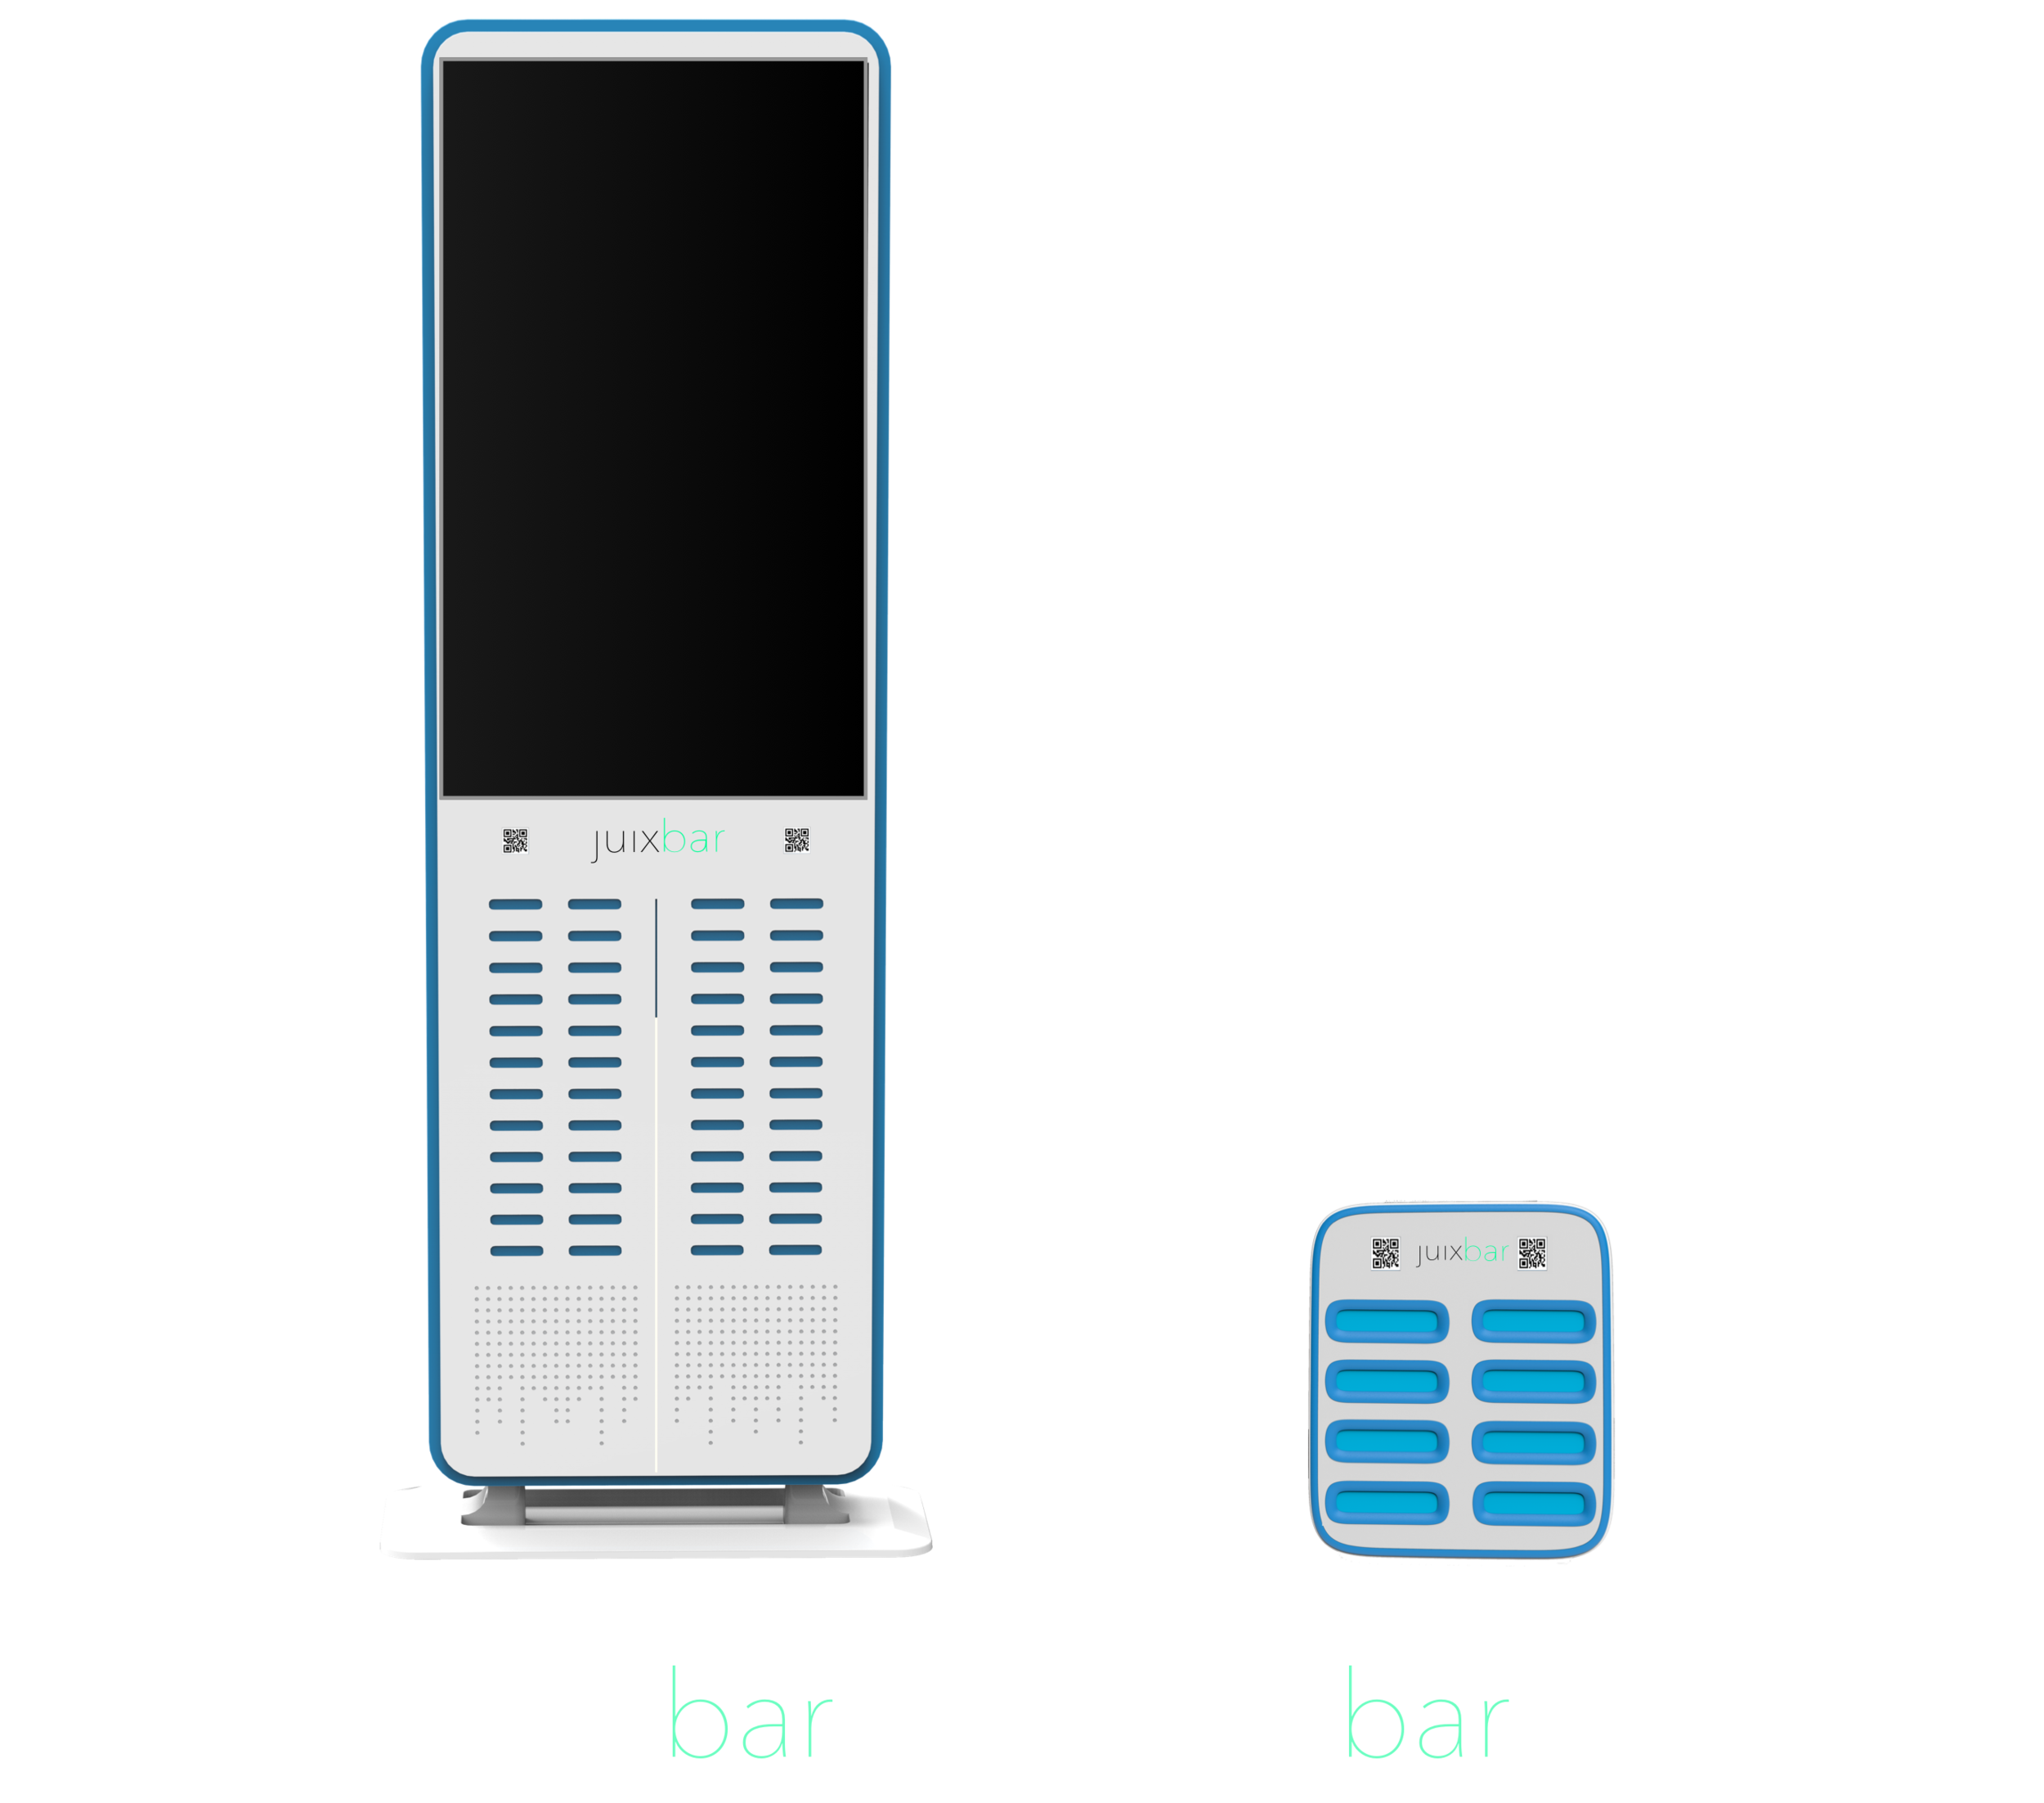 Convenience is Key - Juixboxes can be picked up or dropped off at your local Juixbar anytime you need charging on the go. They can be found at coffee shops, night clubs, malls, airports, and more. Simply rent a power bank and return it at any nearby location.